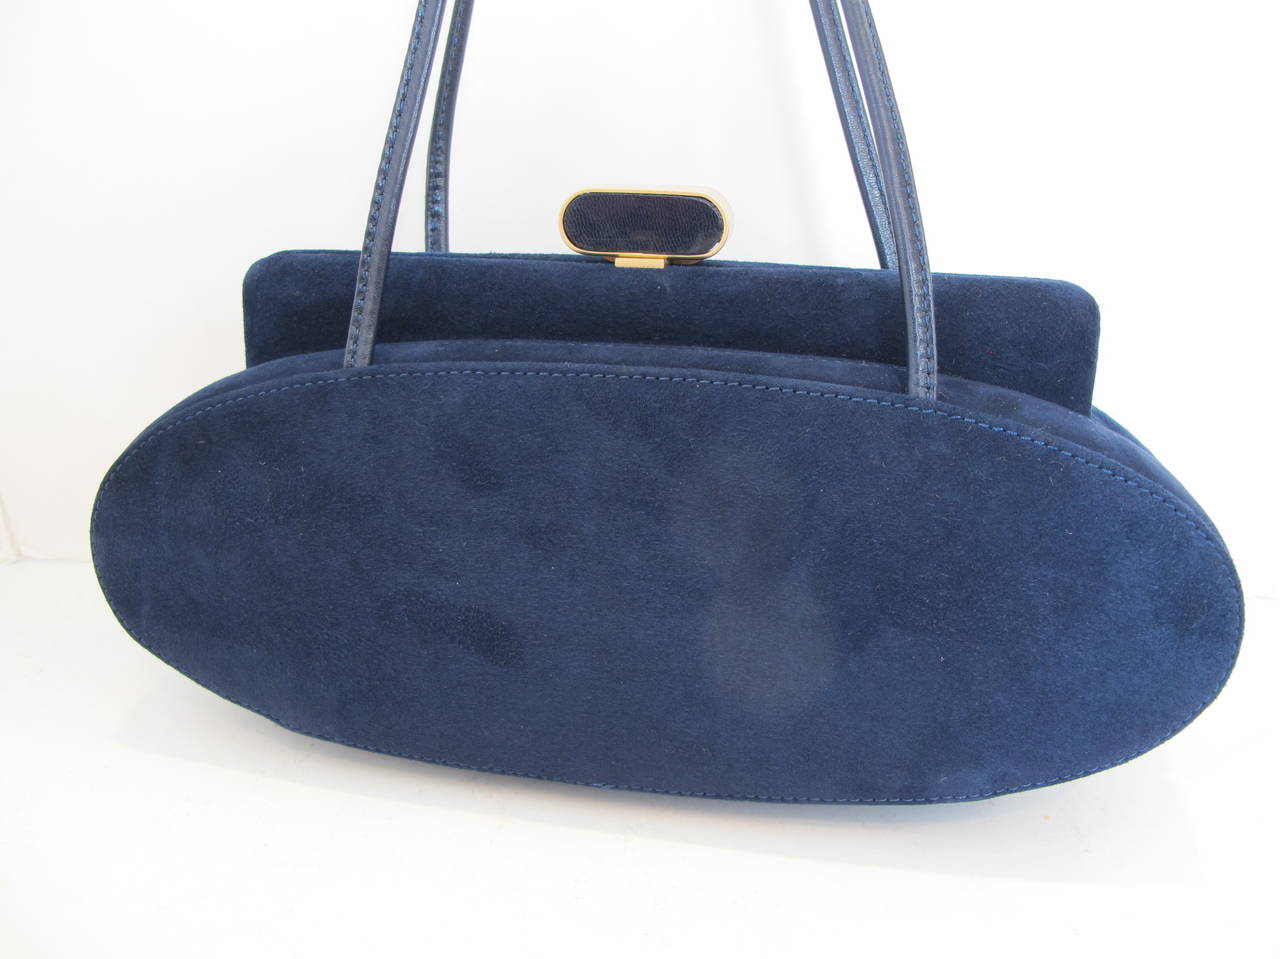 1950's Charles Jourdan Navy Blue Suede Handbag For Sale at 1stdibs